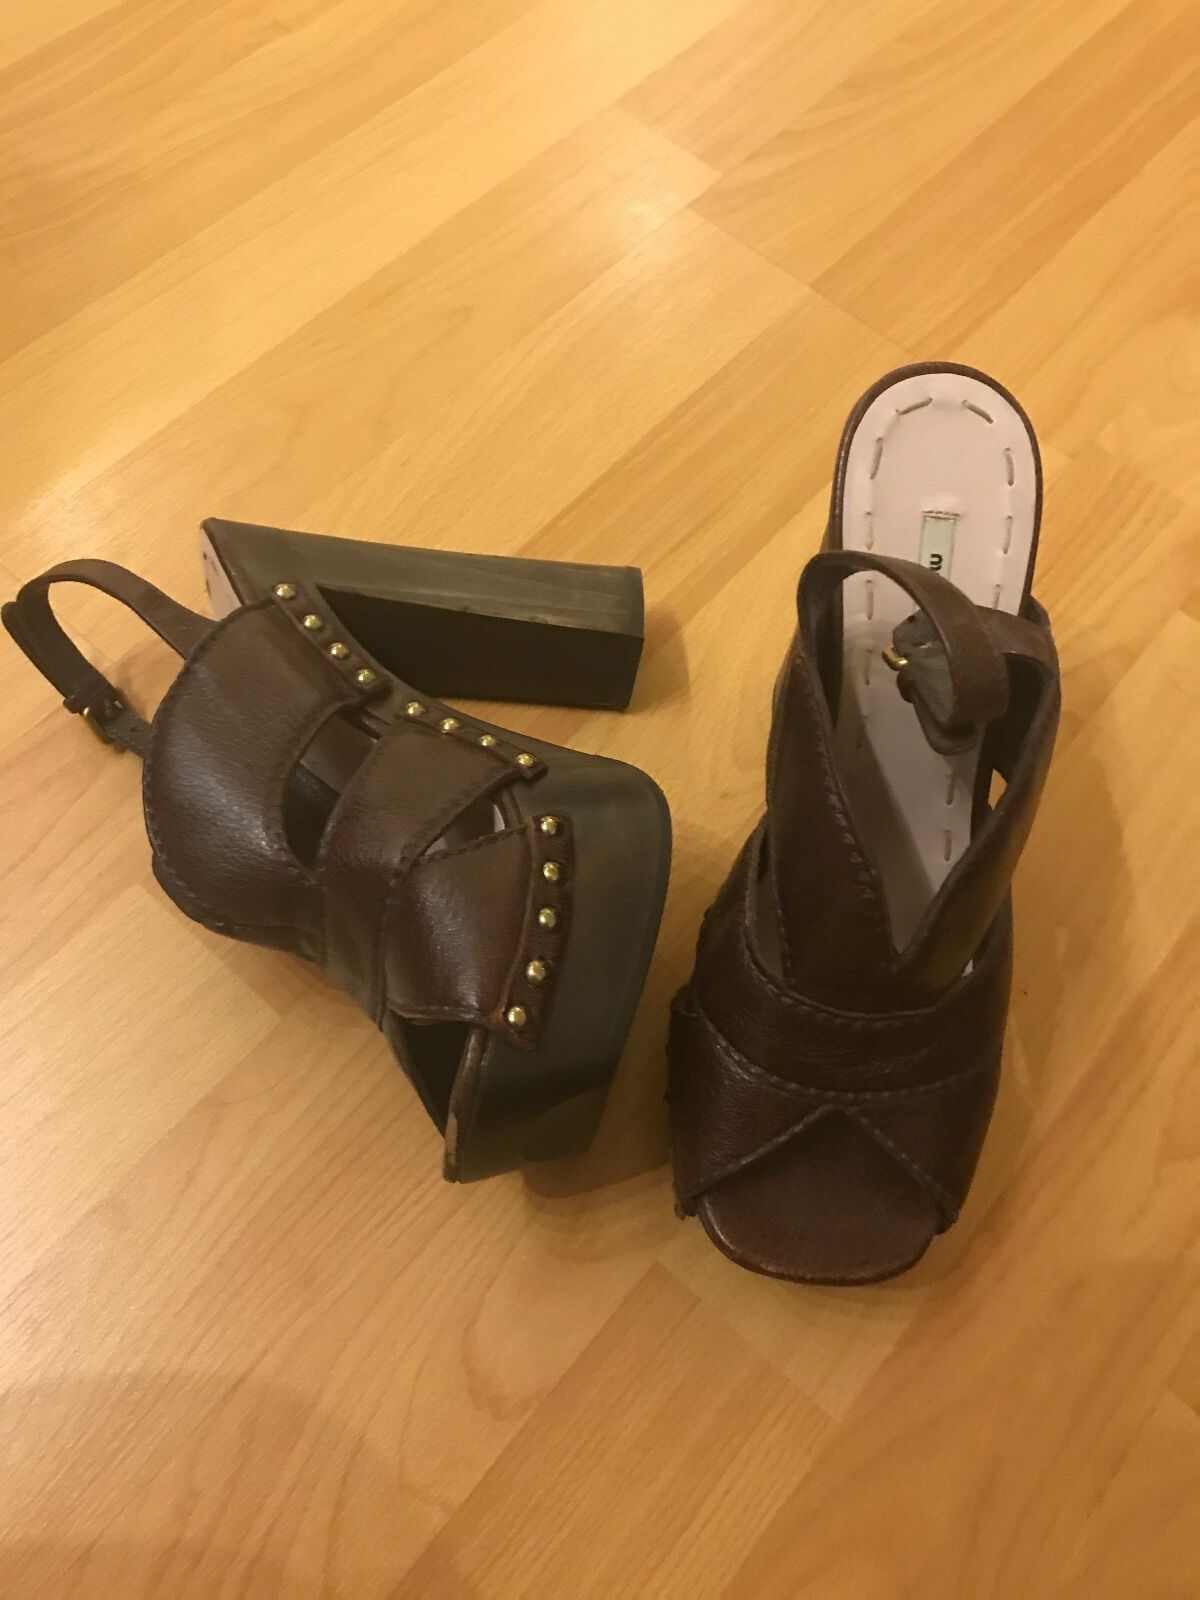 PREOWNED , GREAT CONDITION, MIU MIU BROWN LEATHER HEELS SIZE 37 1/2,   BB